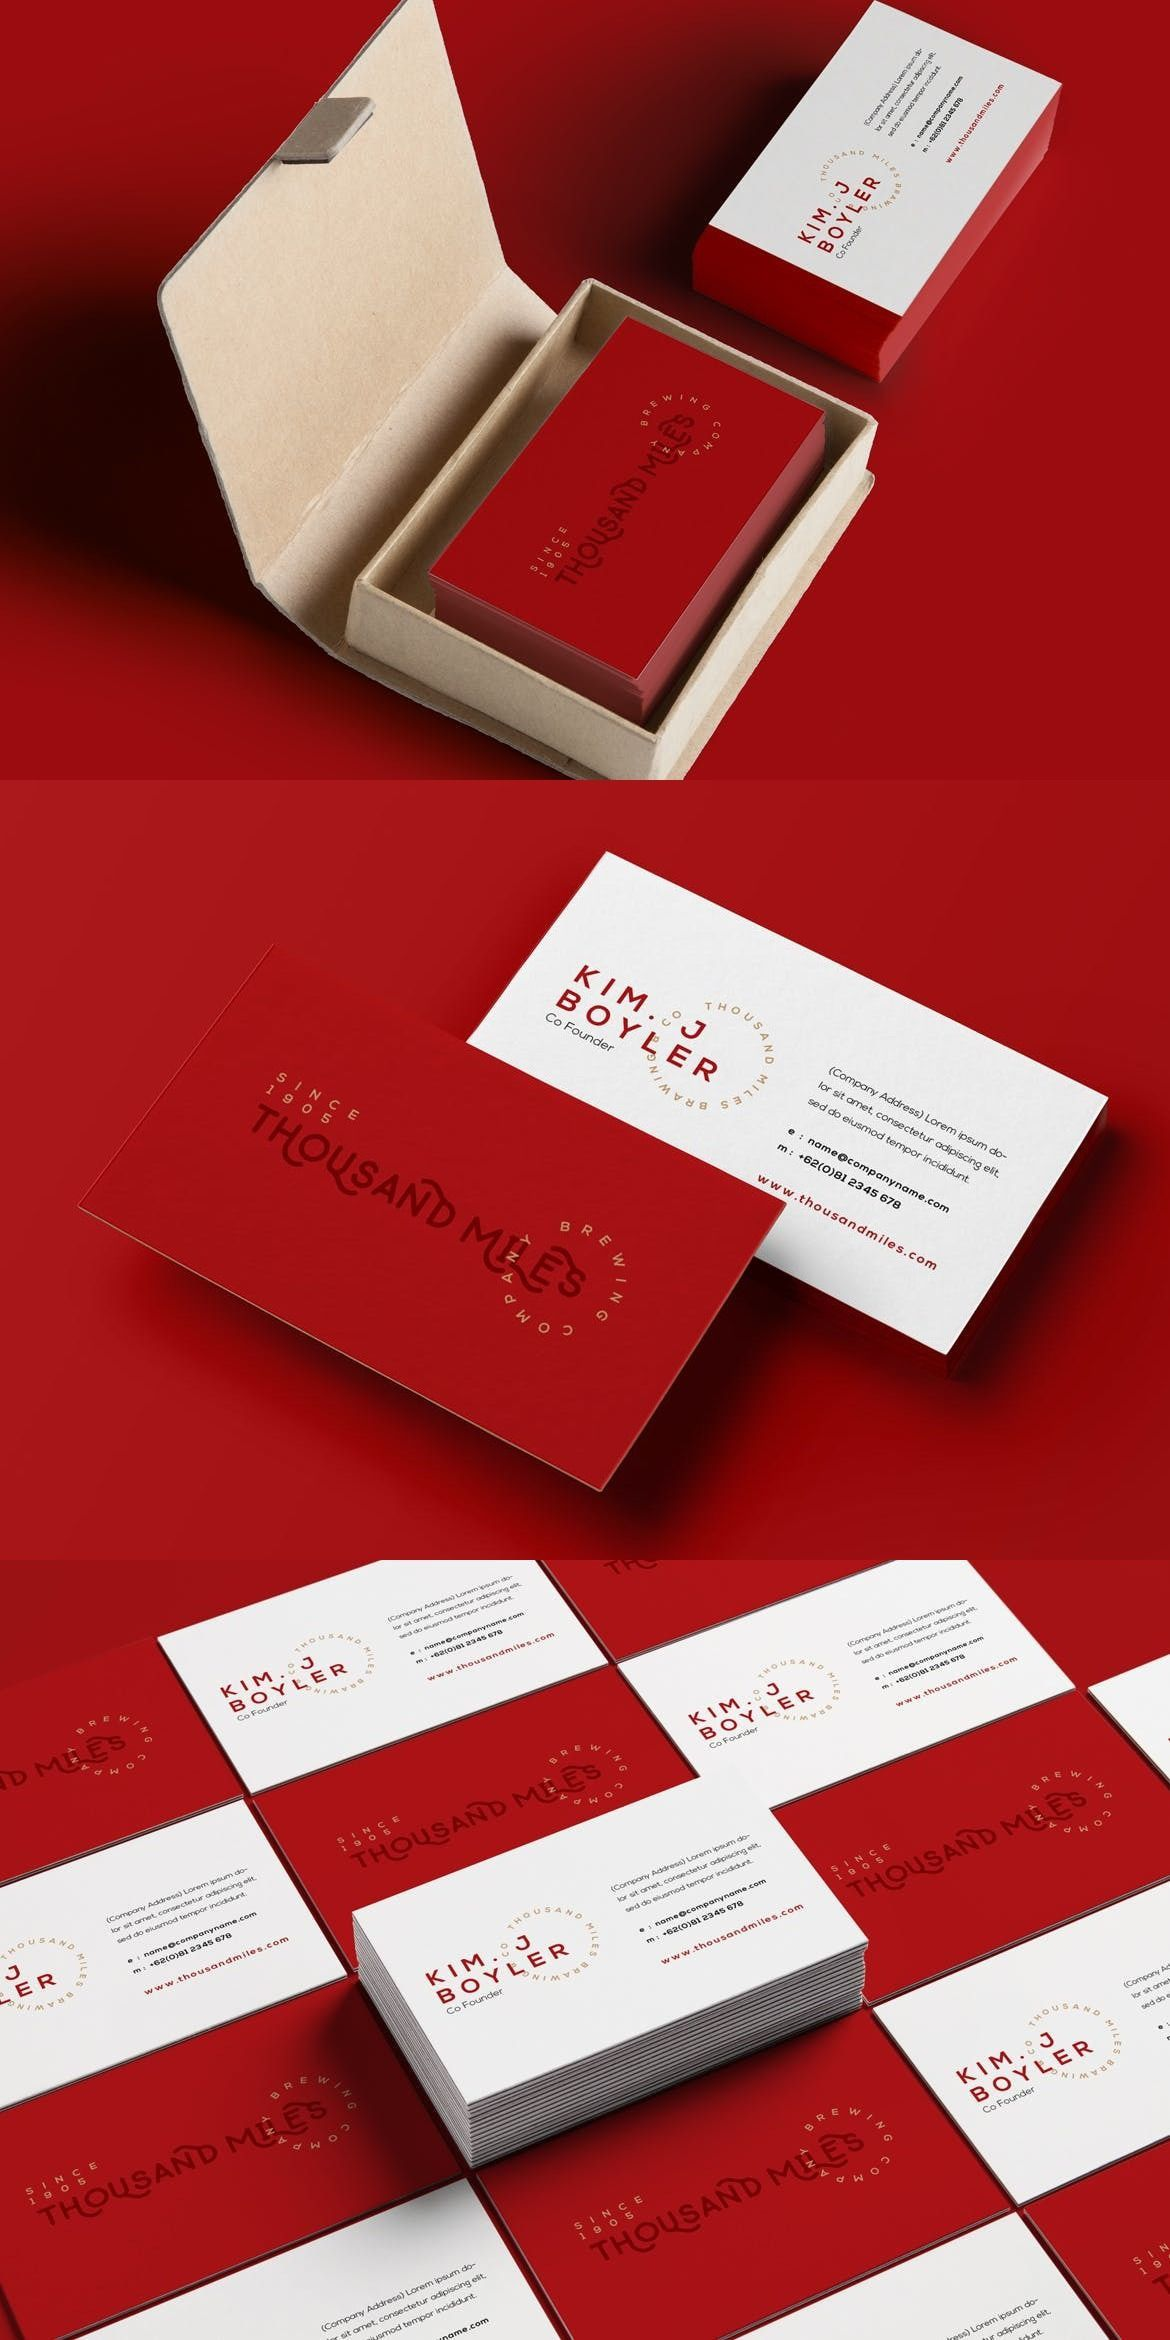 Business Cards Indesign Template A915a55db3cf58d19b87e Fc9445 Download Business Card Business Card Template Design Free Printable Business Cards